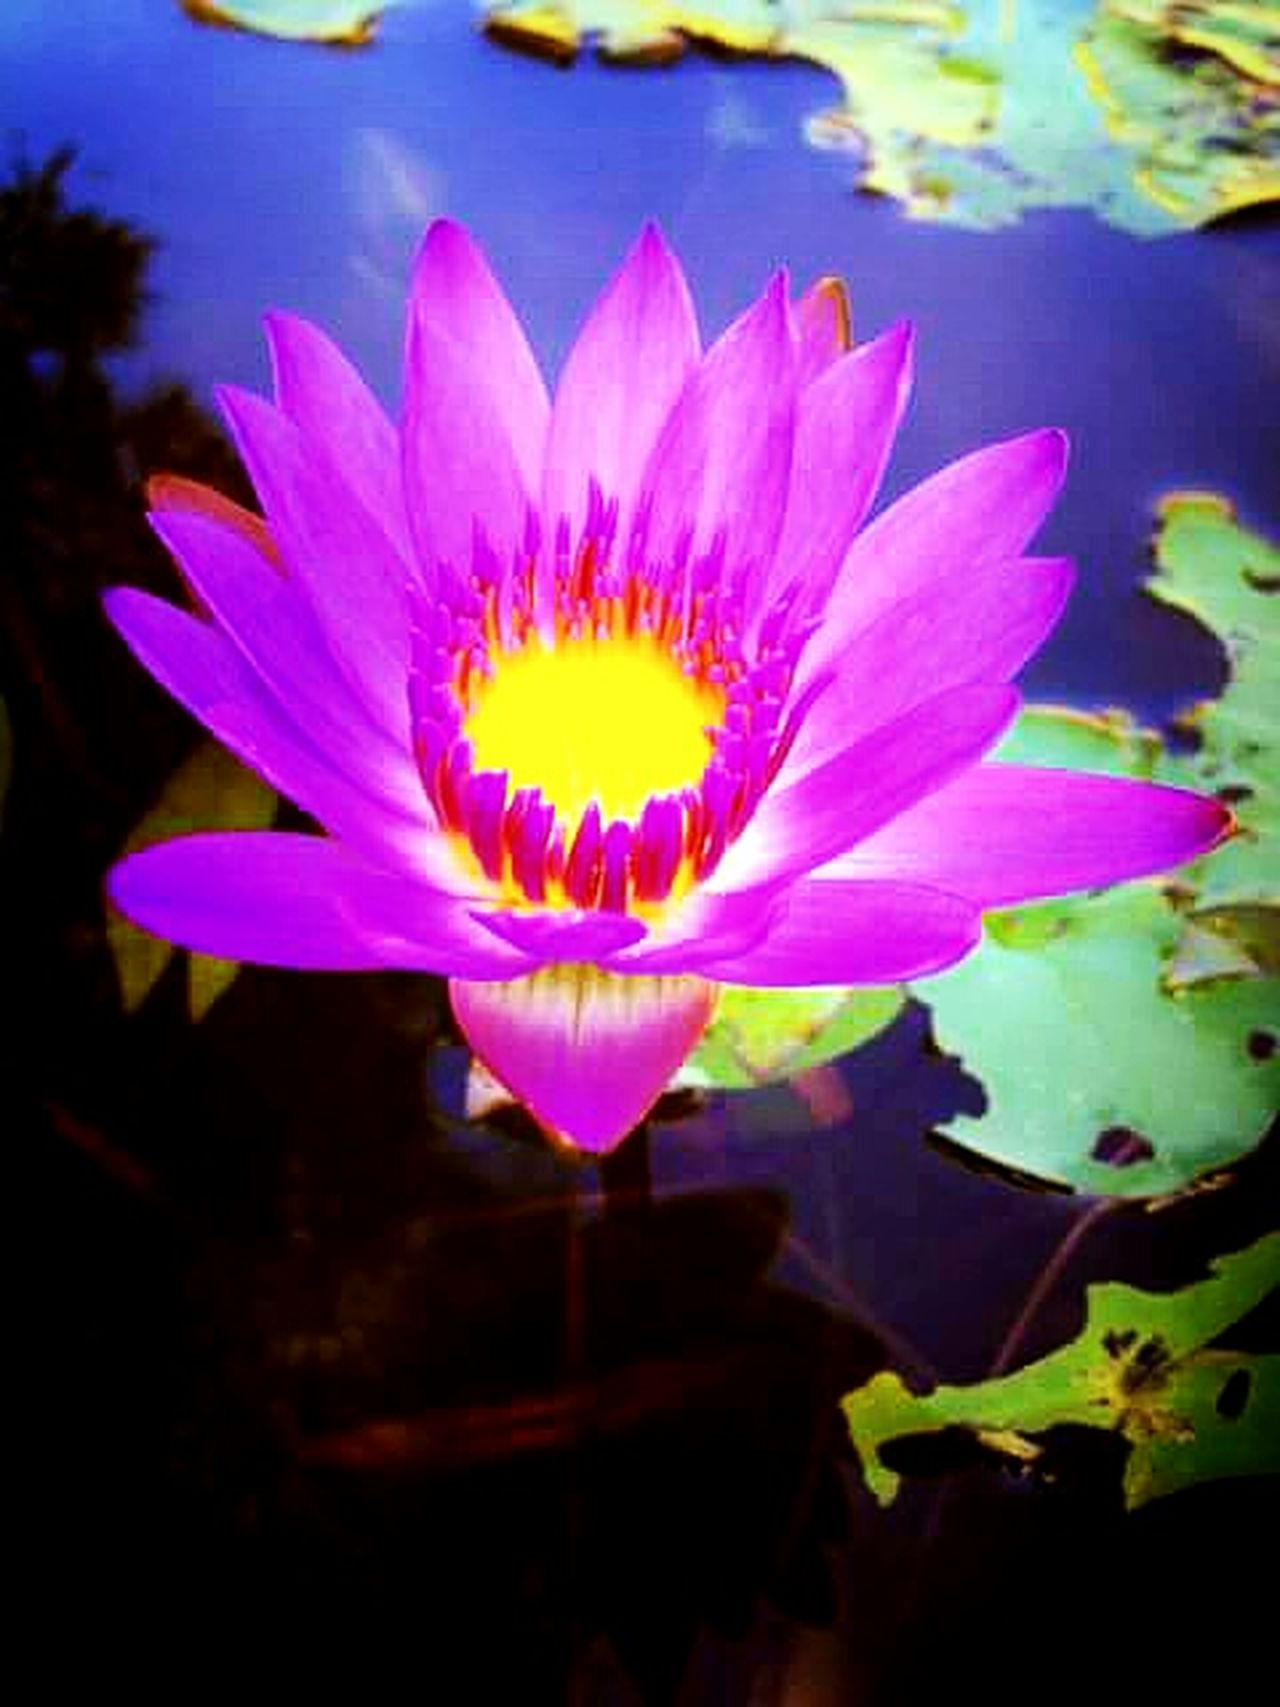 Lotus loves. 🌸 Flowers Pink Flower Naturelovers Flowerporn Flower Collection Nature_collection Eyeem Nice Shots